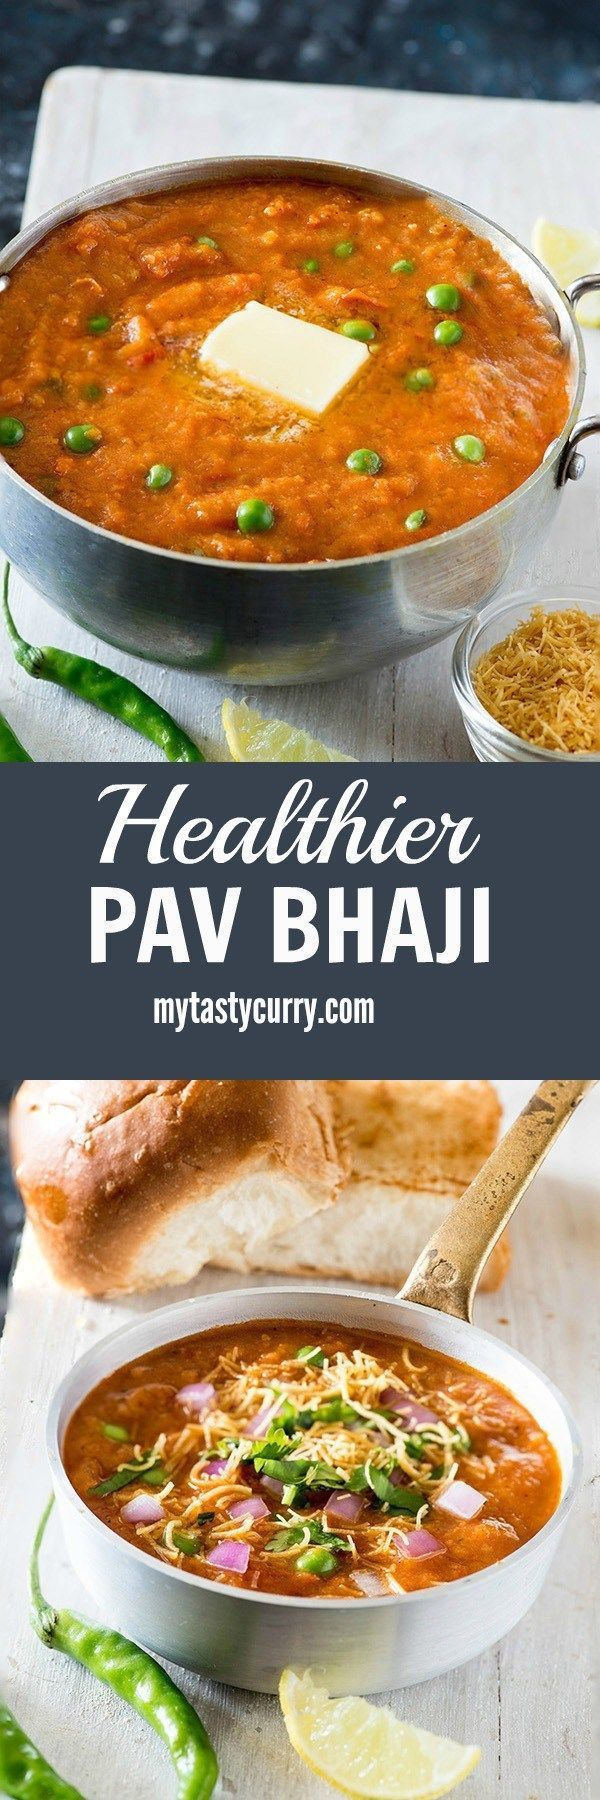 healthy pav bhaji recipe, In this recipe This Mumbai Street food classic is made healthier way